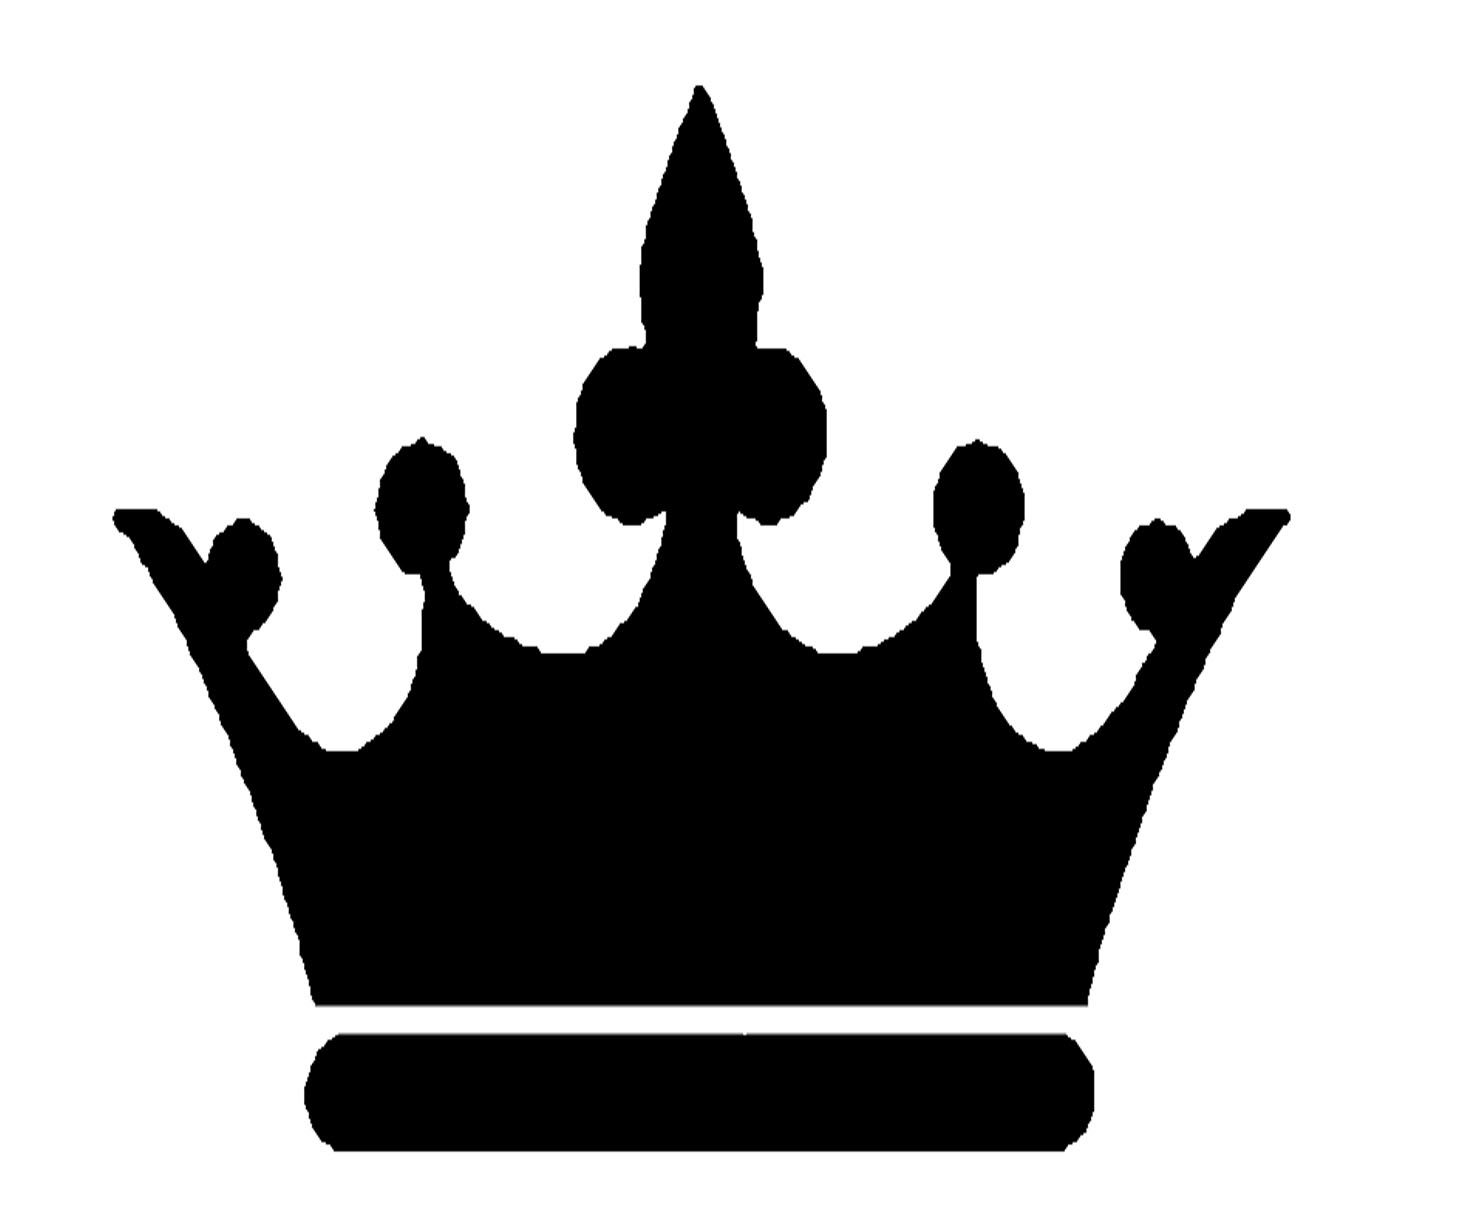 King crown silhouette at. Queen clipart taj